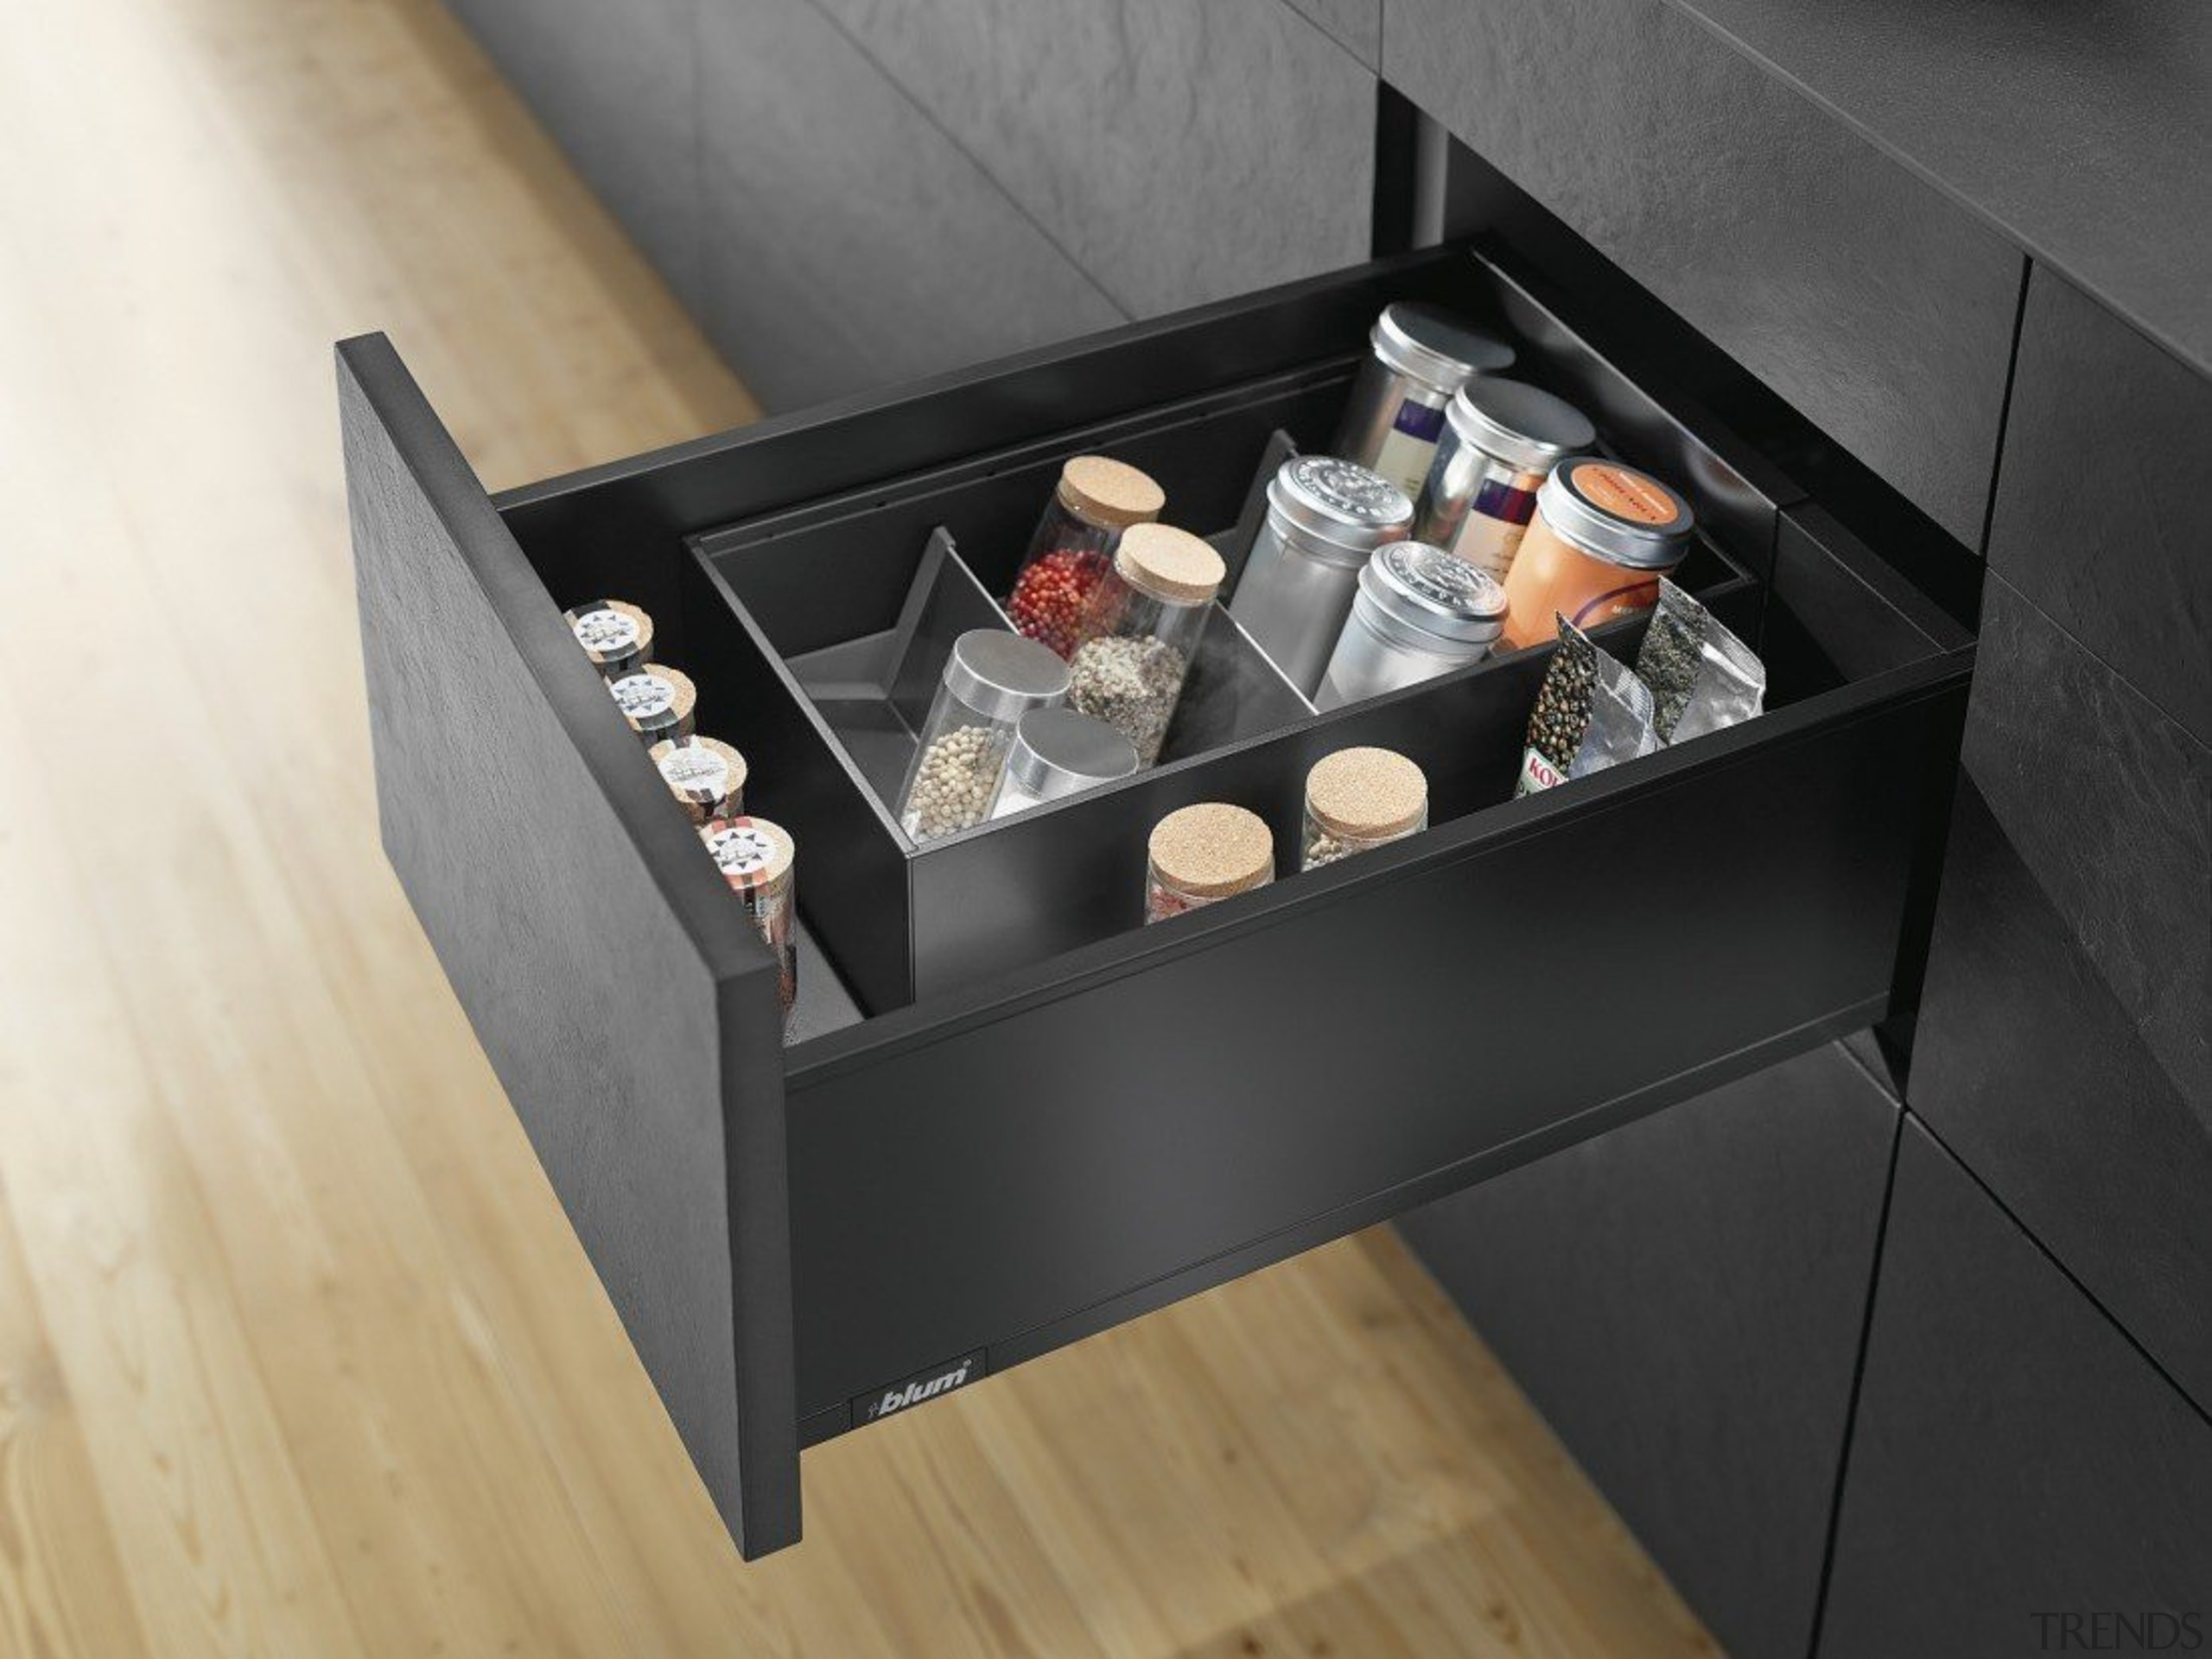 AMBIA-LINE inner dividing system – organization at its drawer, furniture, product design, table, black